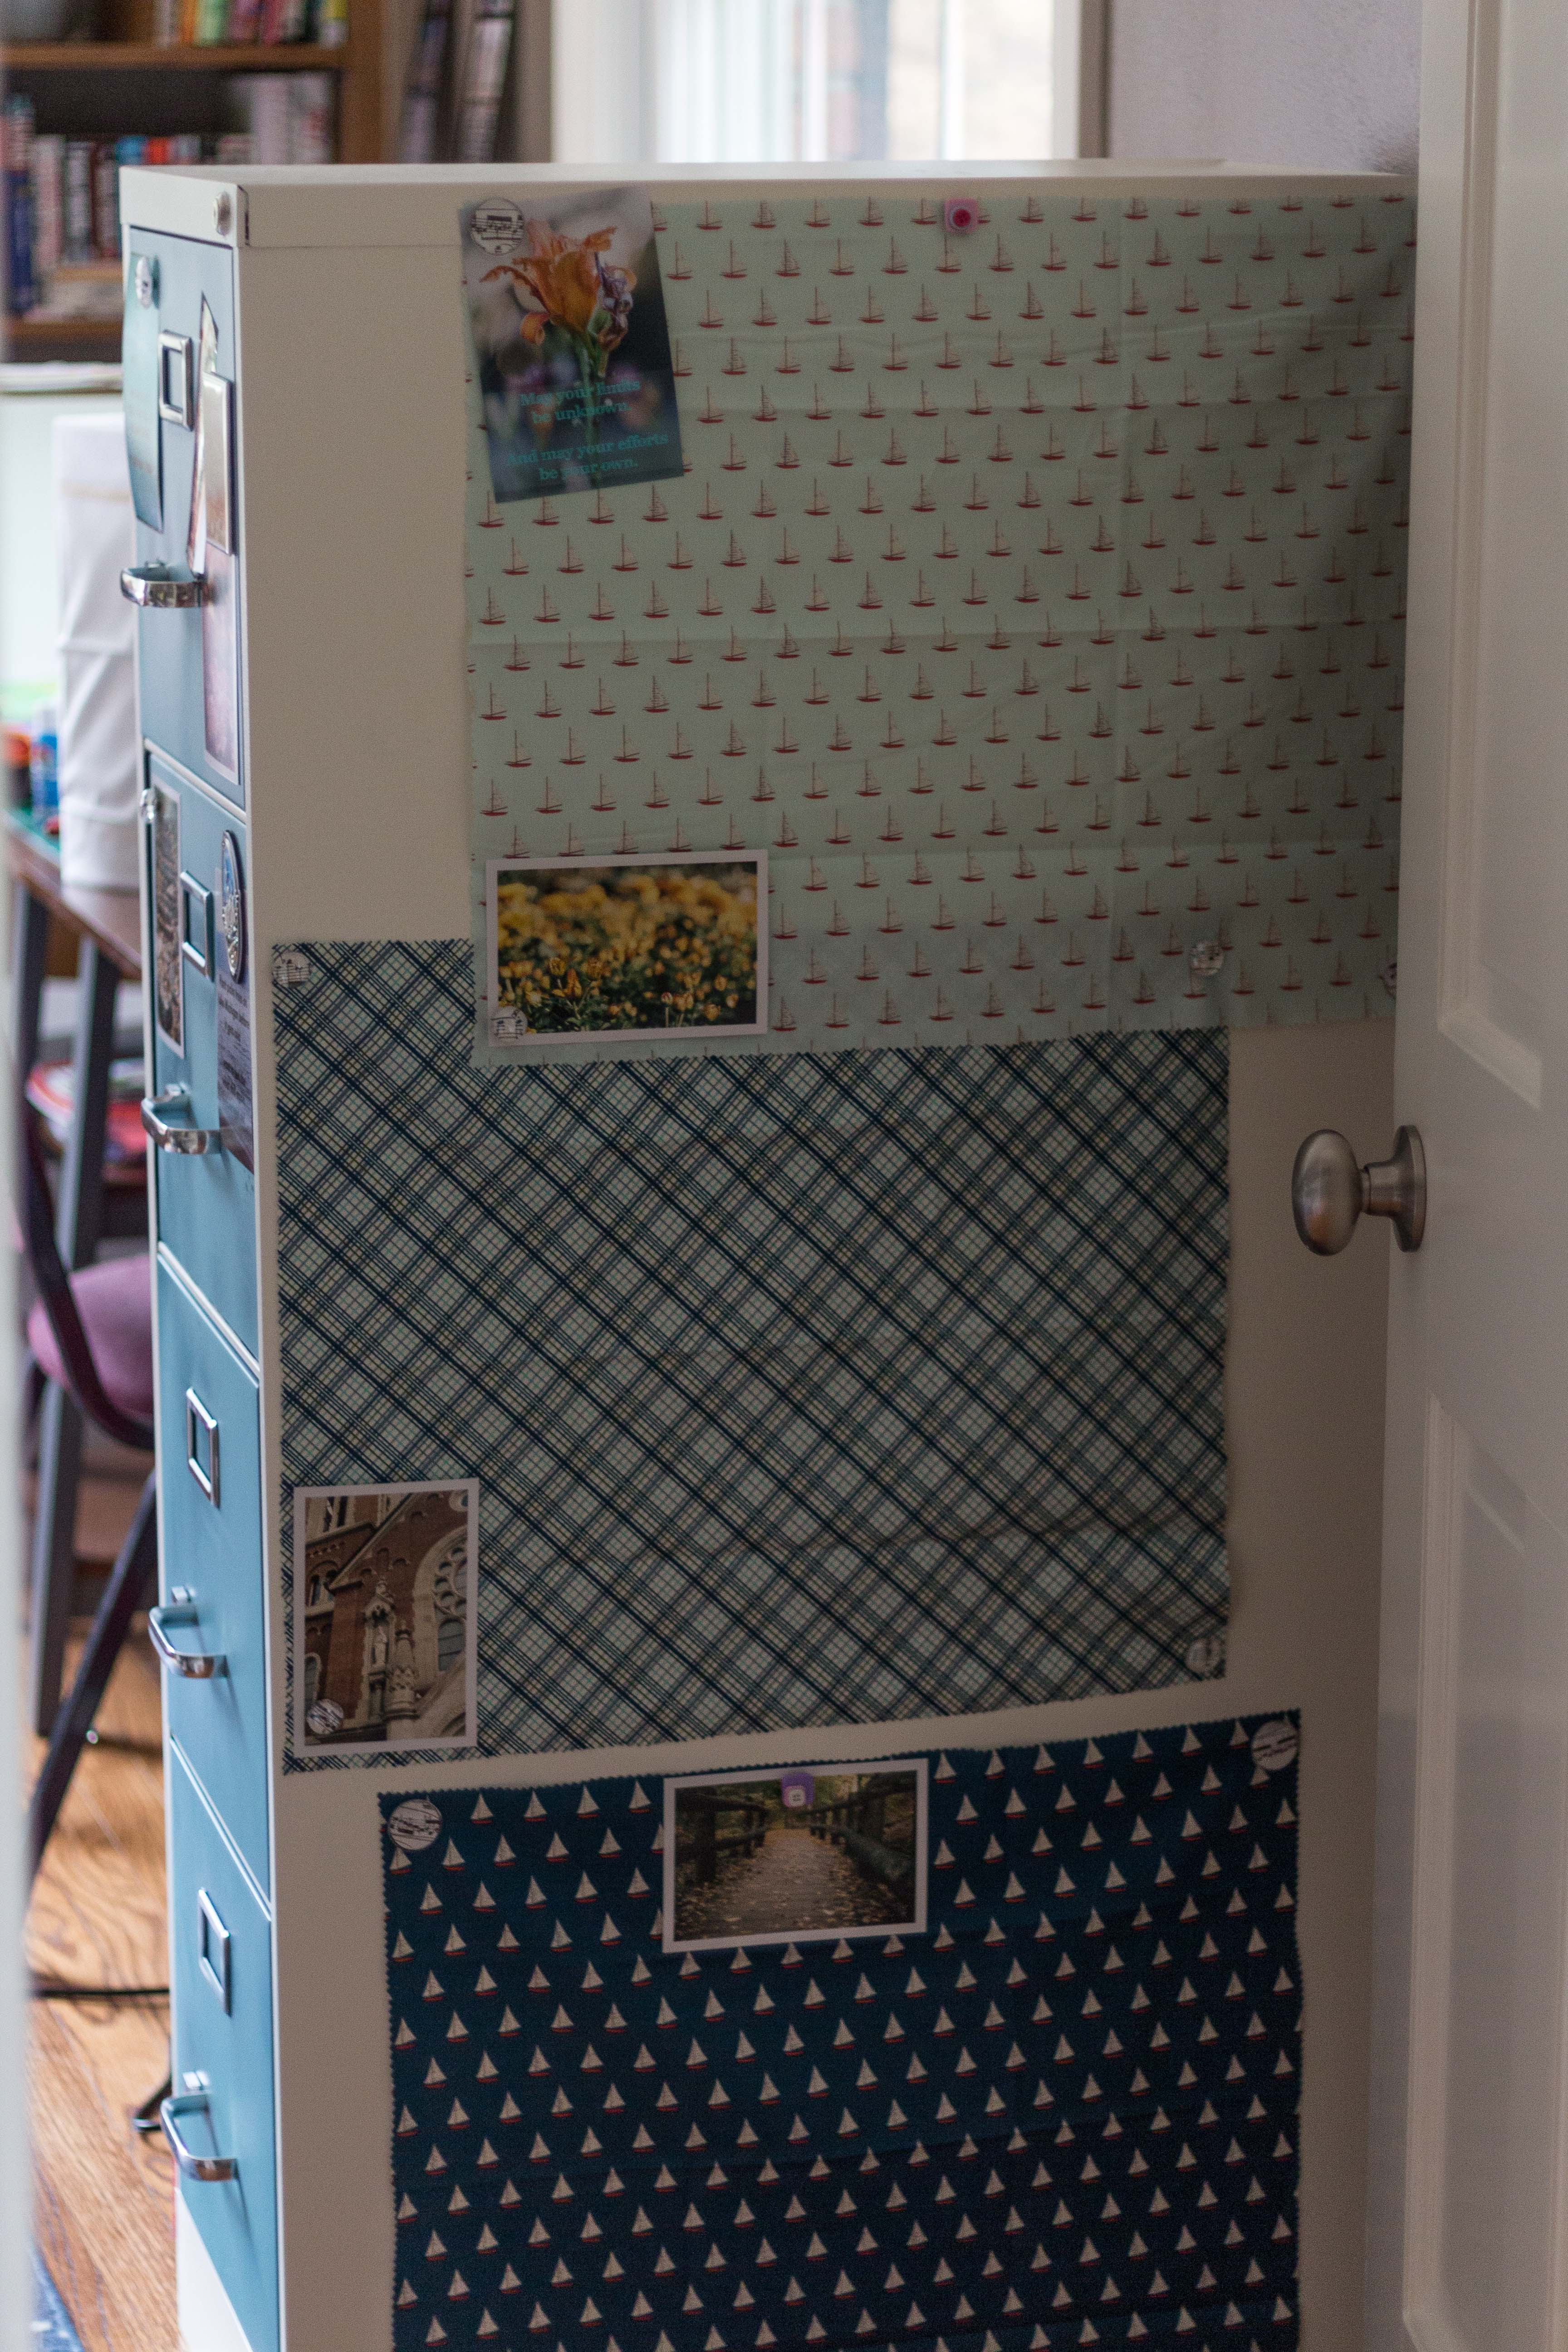 Metal File Cabinet Painting Makeover! I decorated my file cabinet with fabric panels, magnets, and photos. Click through to learn more about how to paint and decorate your own file cabinet. | https://www.roseclearfield.com